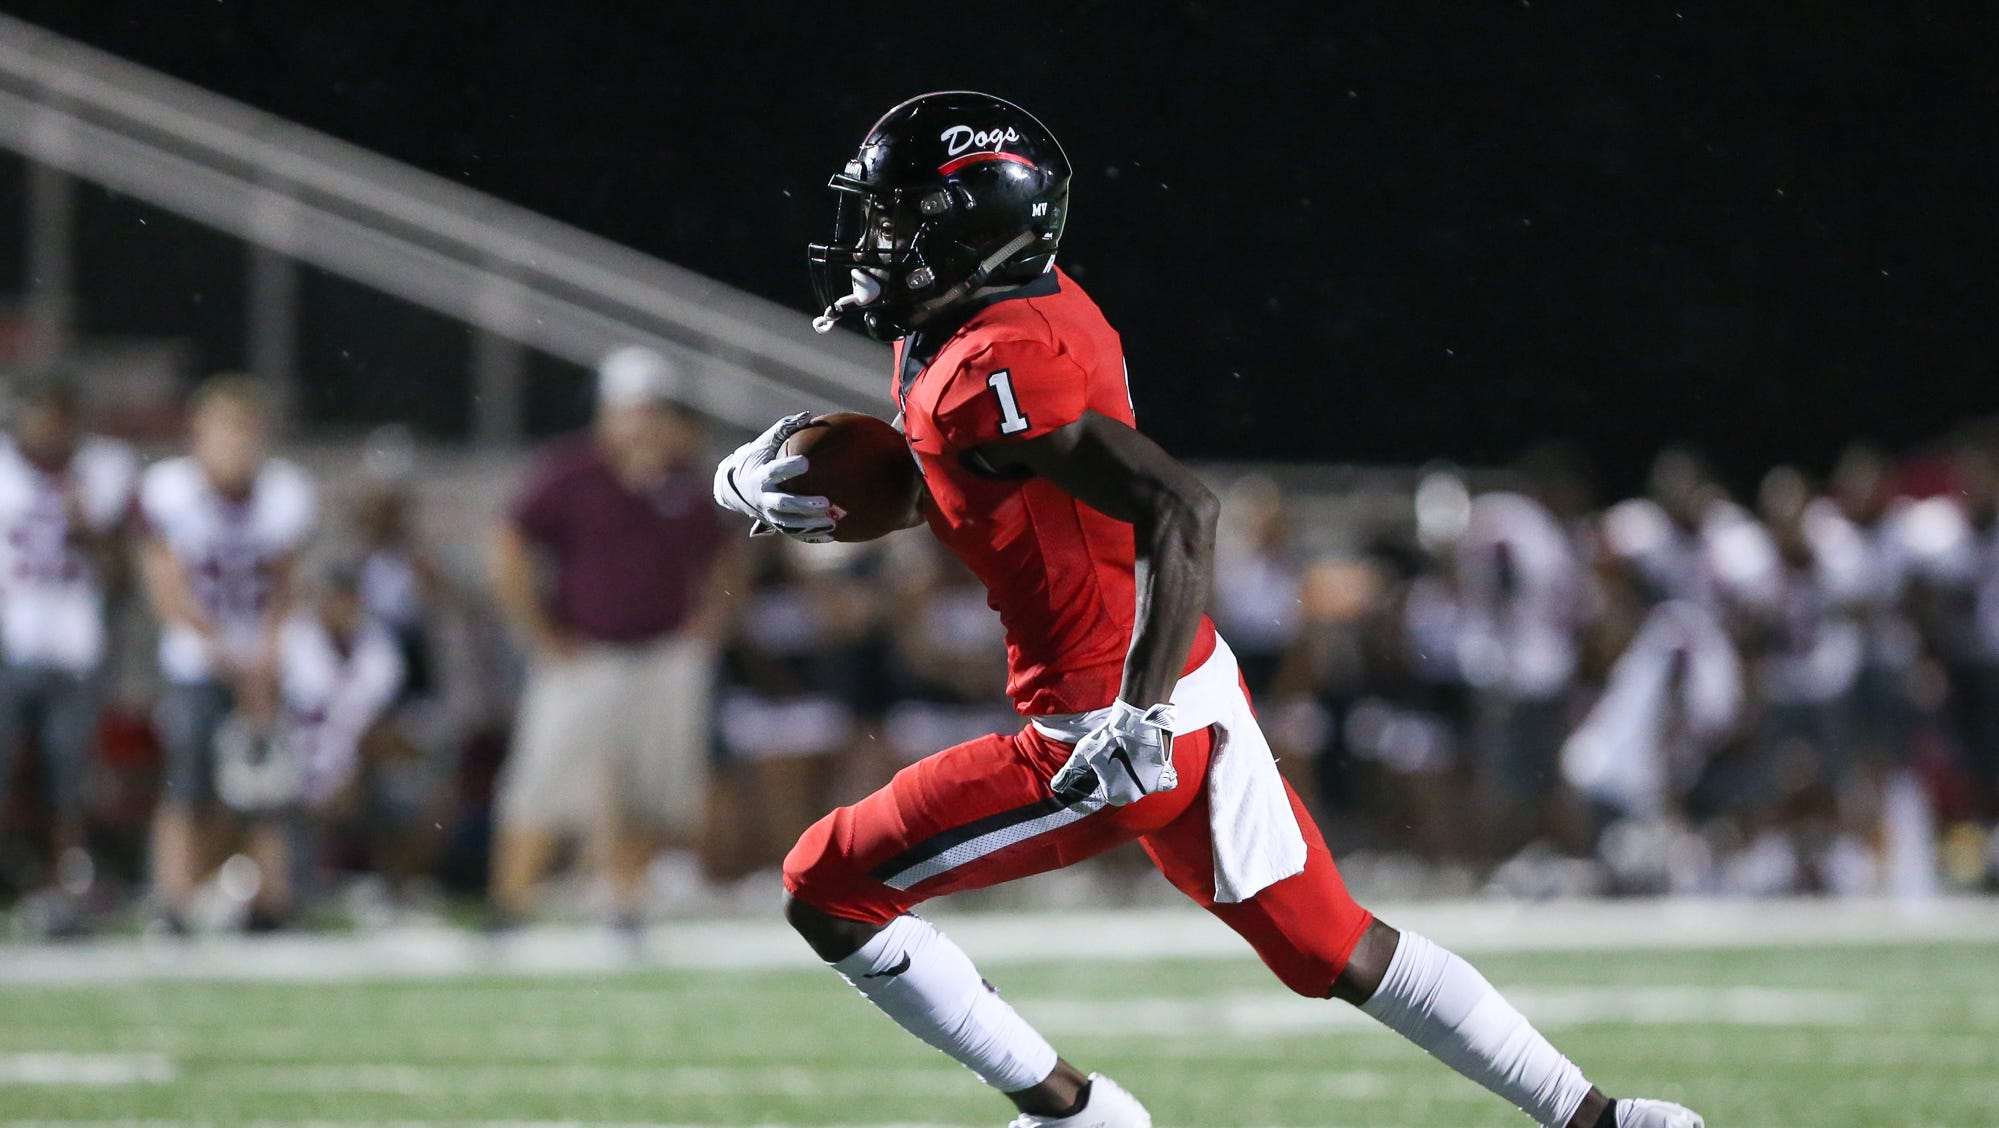 Brandon High School's Ashton Nickleberry (1) races for the end zone near the end of the first half. Terry played Brandon in a Class 6A football game Friday, September 21, 2018. Photo by Keith Warren